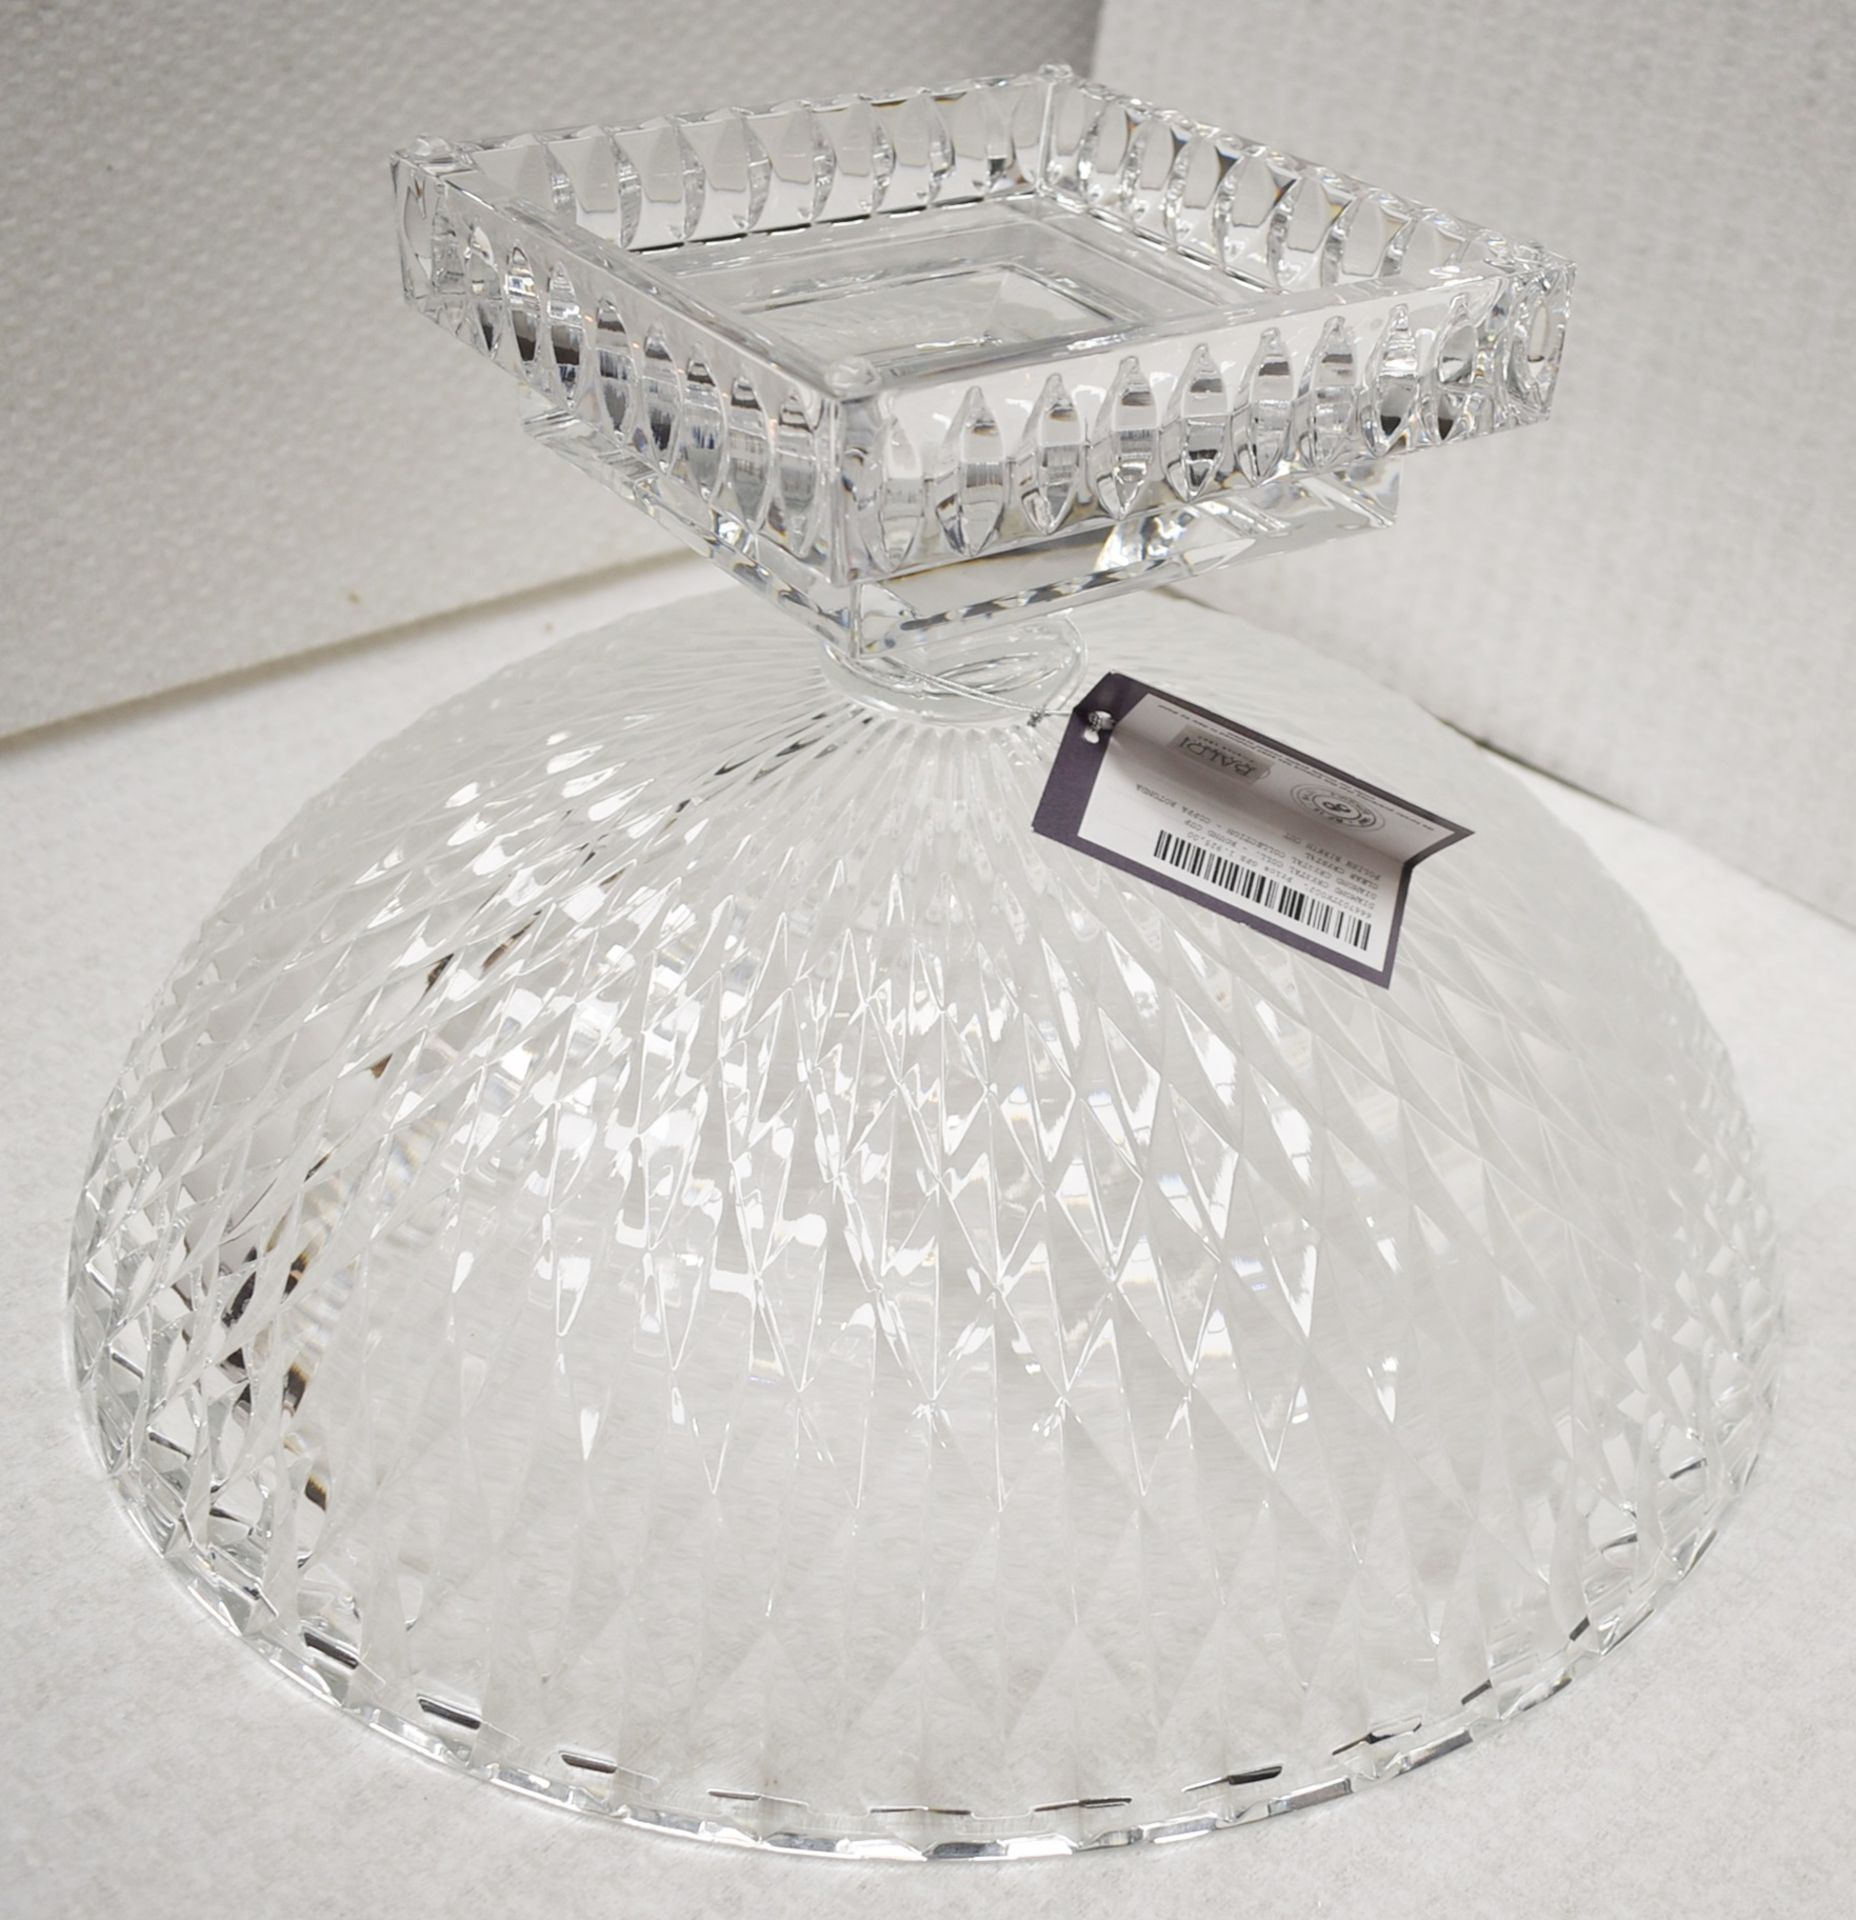 1 x BALDI 'Home Jewels' Italian Hand-crafted Artisan Large Round Clear Crystal Bowl - RRP £1,925 - Image 2 of 4